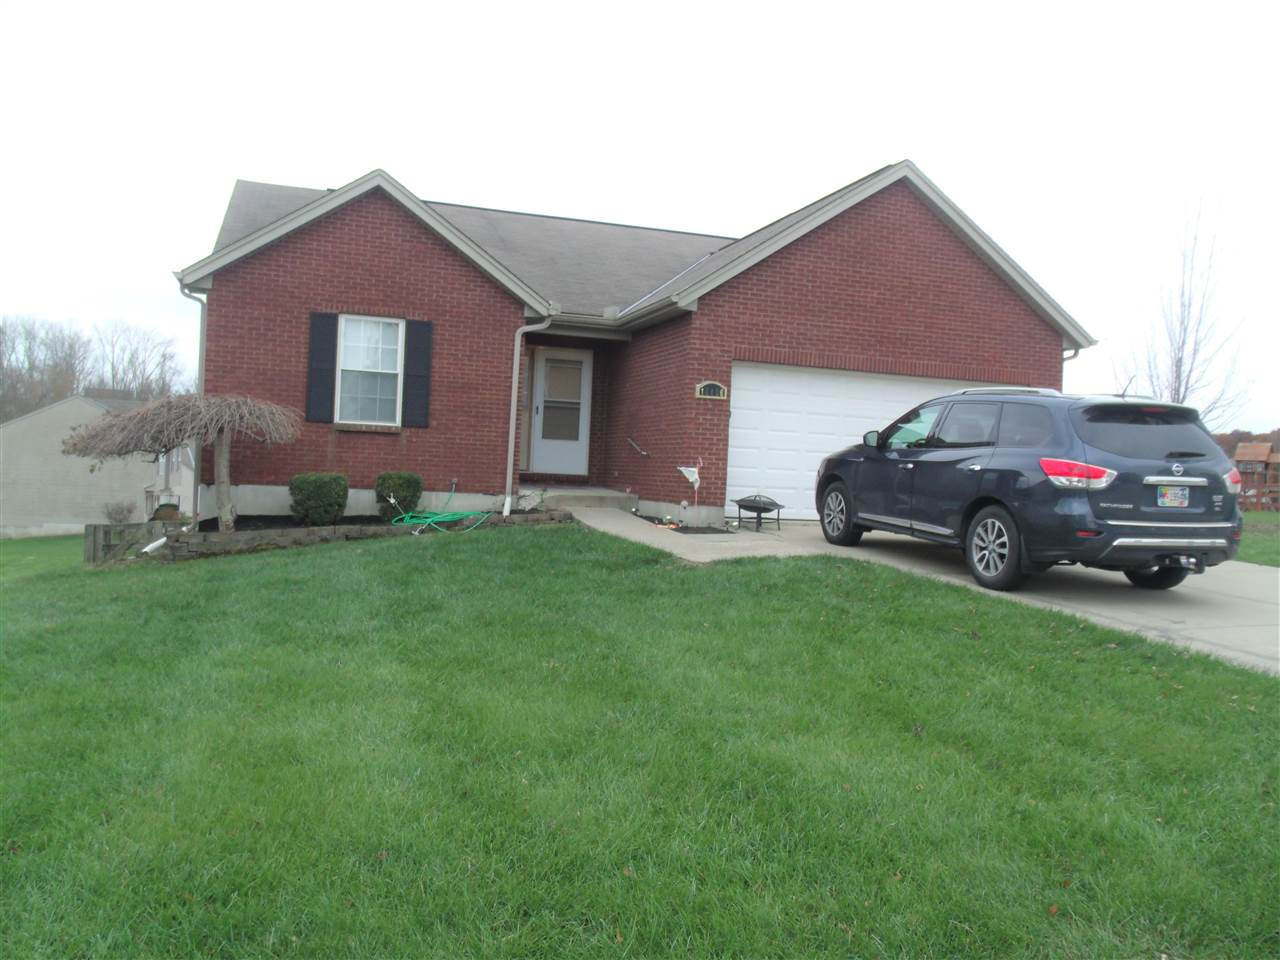 Photo 1 for 10406 Sharpsburg Dr Independence, KY 41051